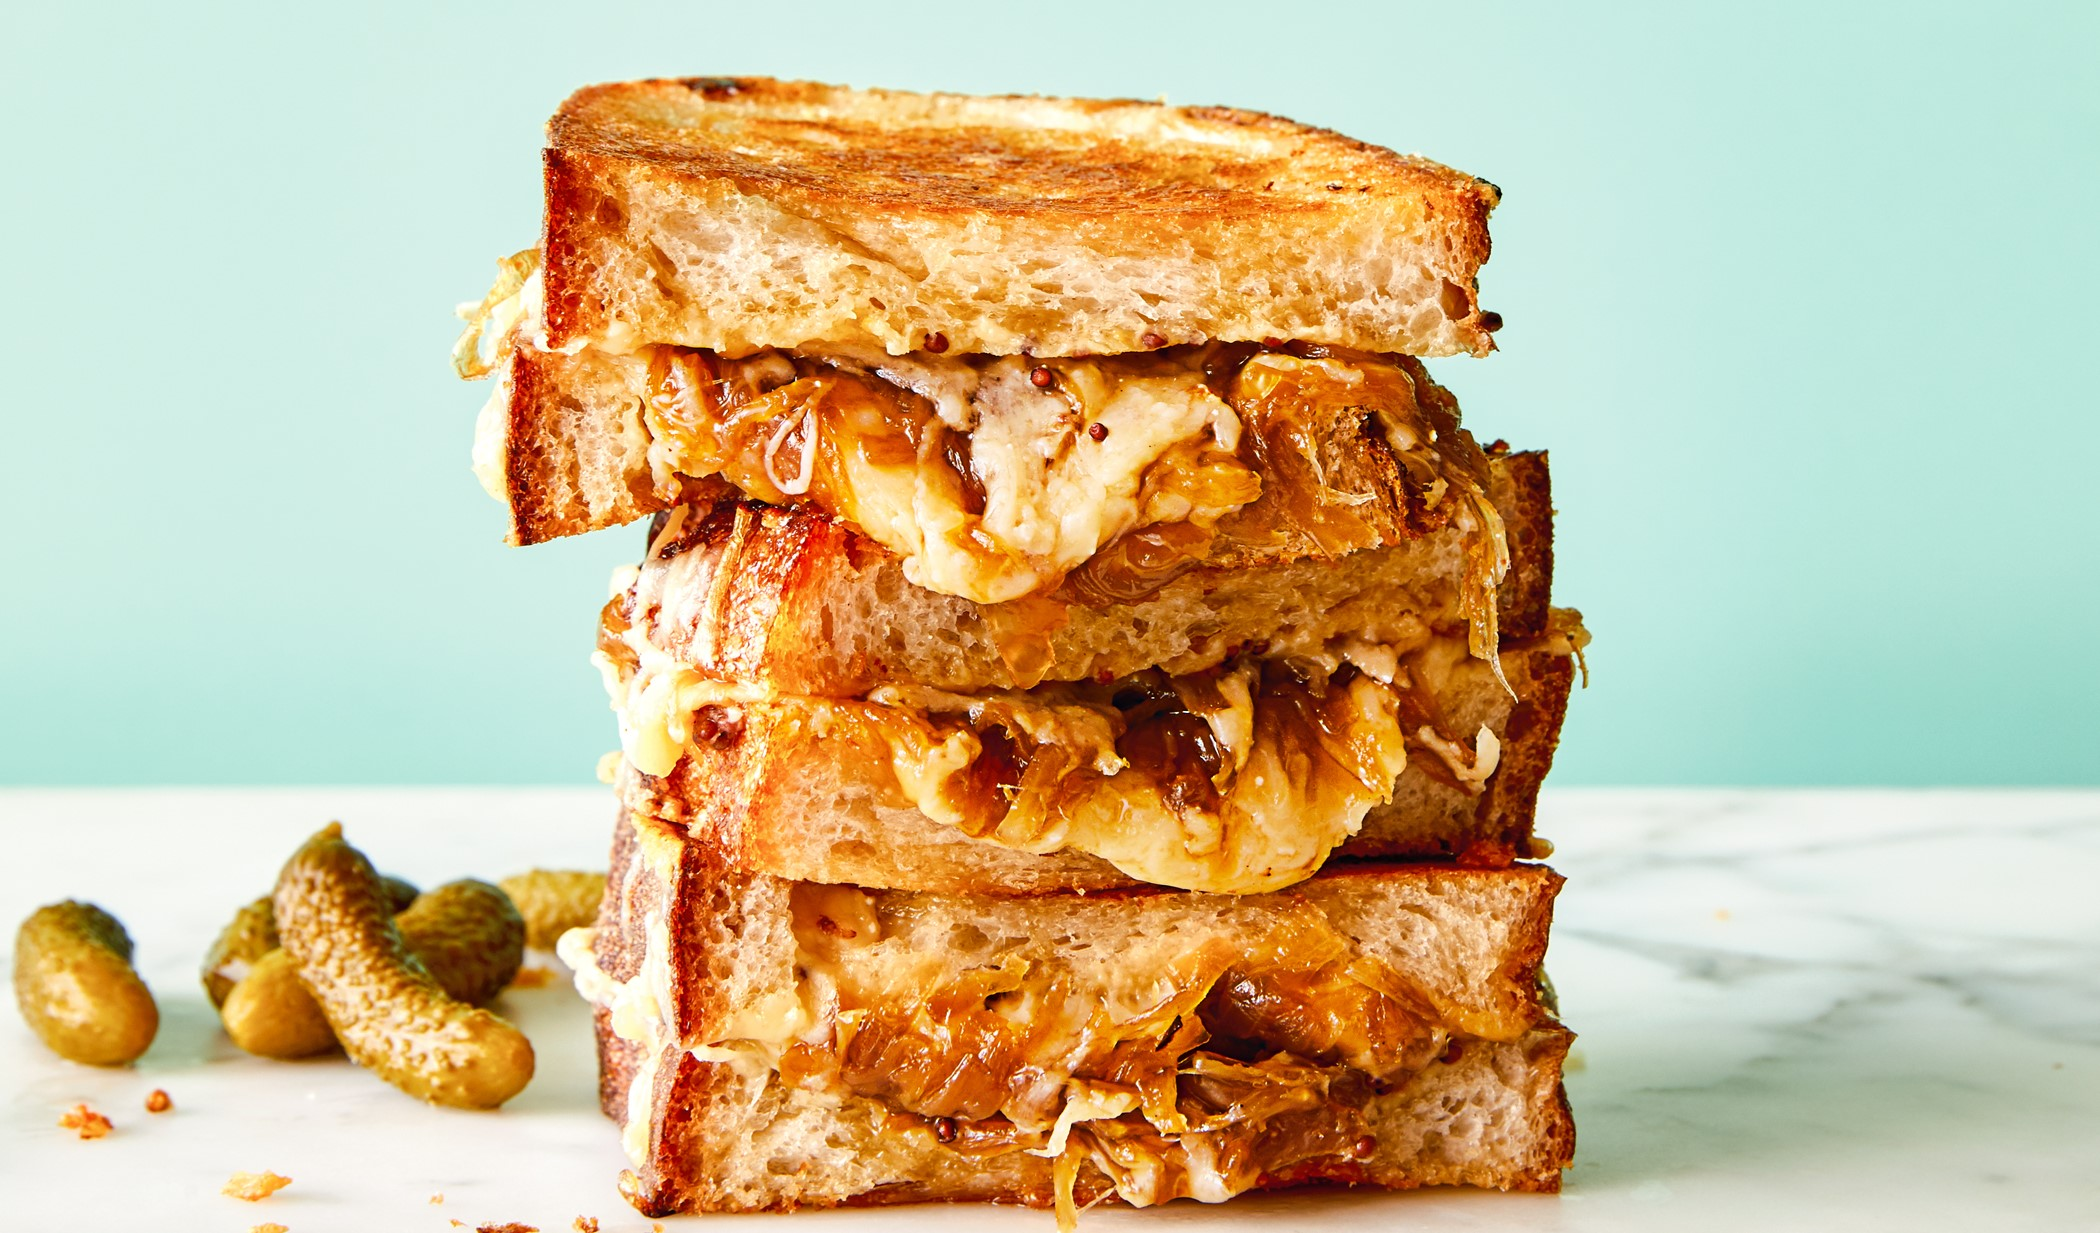 Caramelized Grilled Cheese